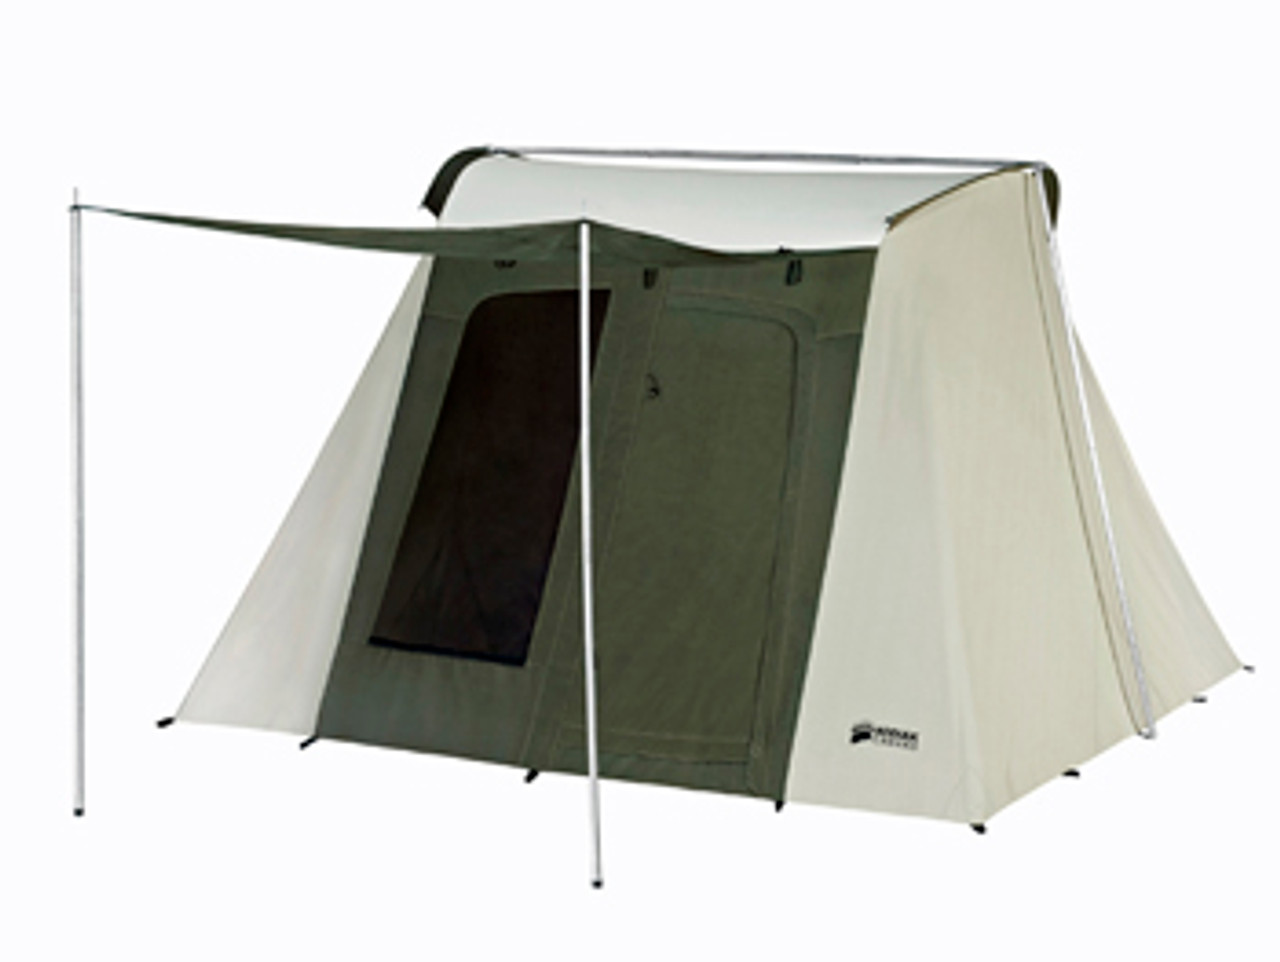 10 x 10 ft. Flex-Bow Canvas Tent Basic